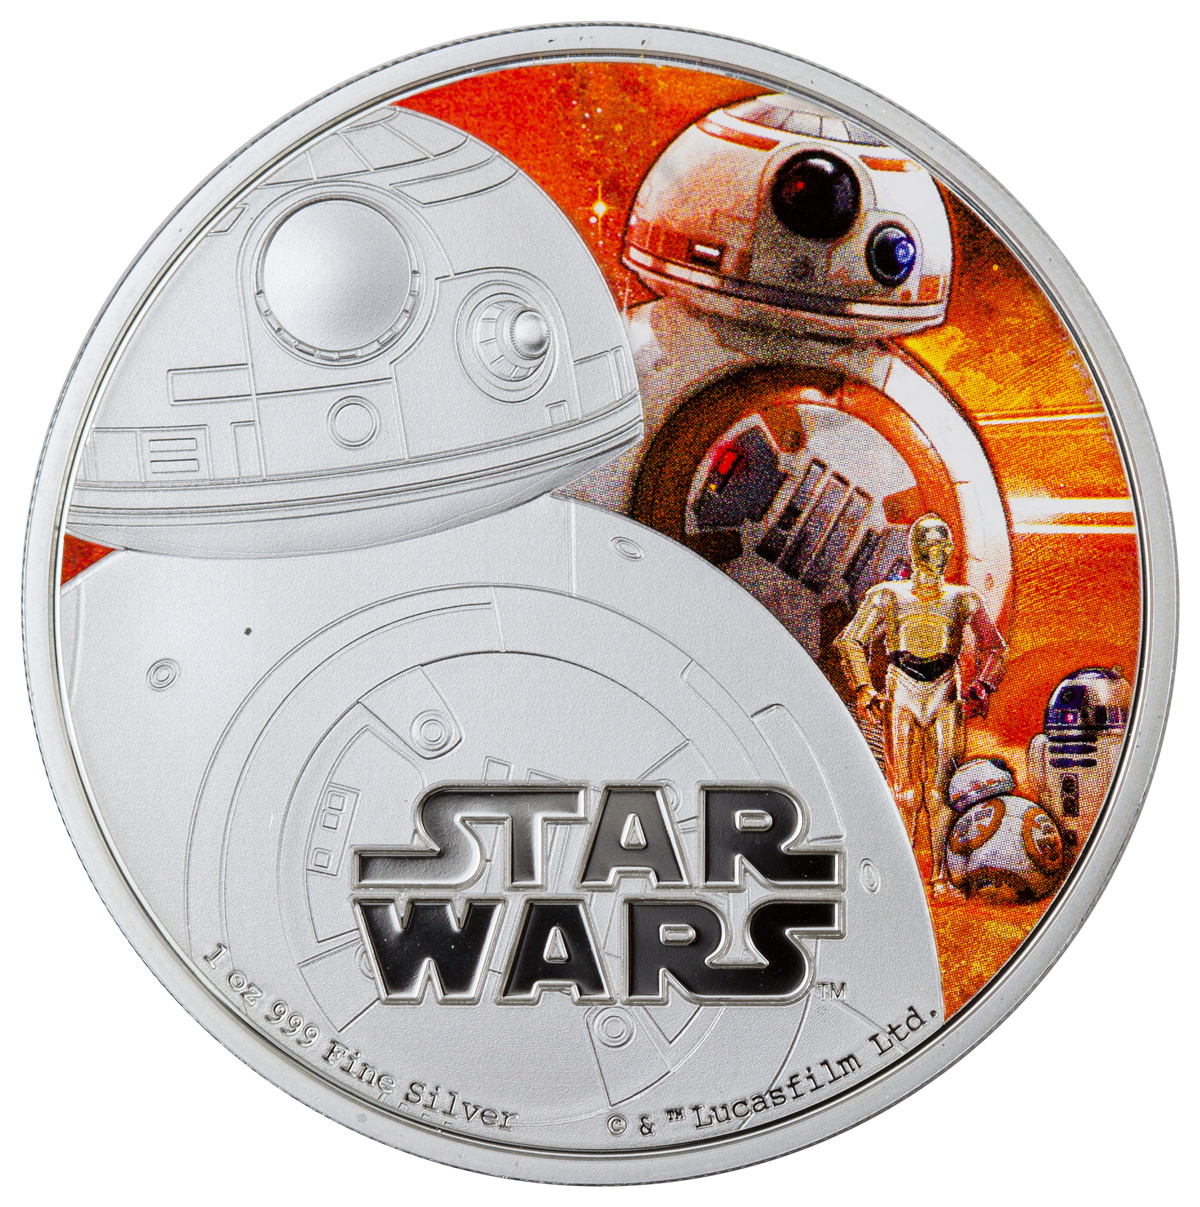 2016 Niue $2 1 oz. Colorized Proof Silver Star Wars: The Force Awakens - BB-8 - GEM Proof (Original Mint Packaging)